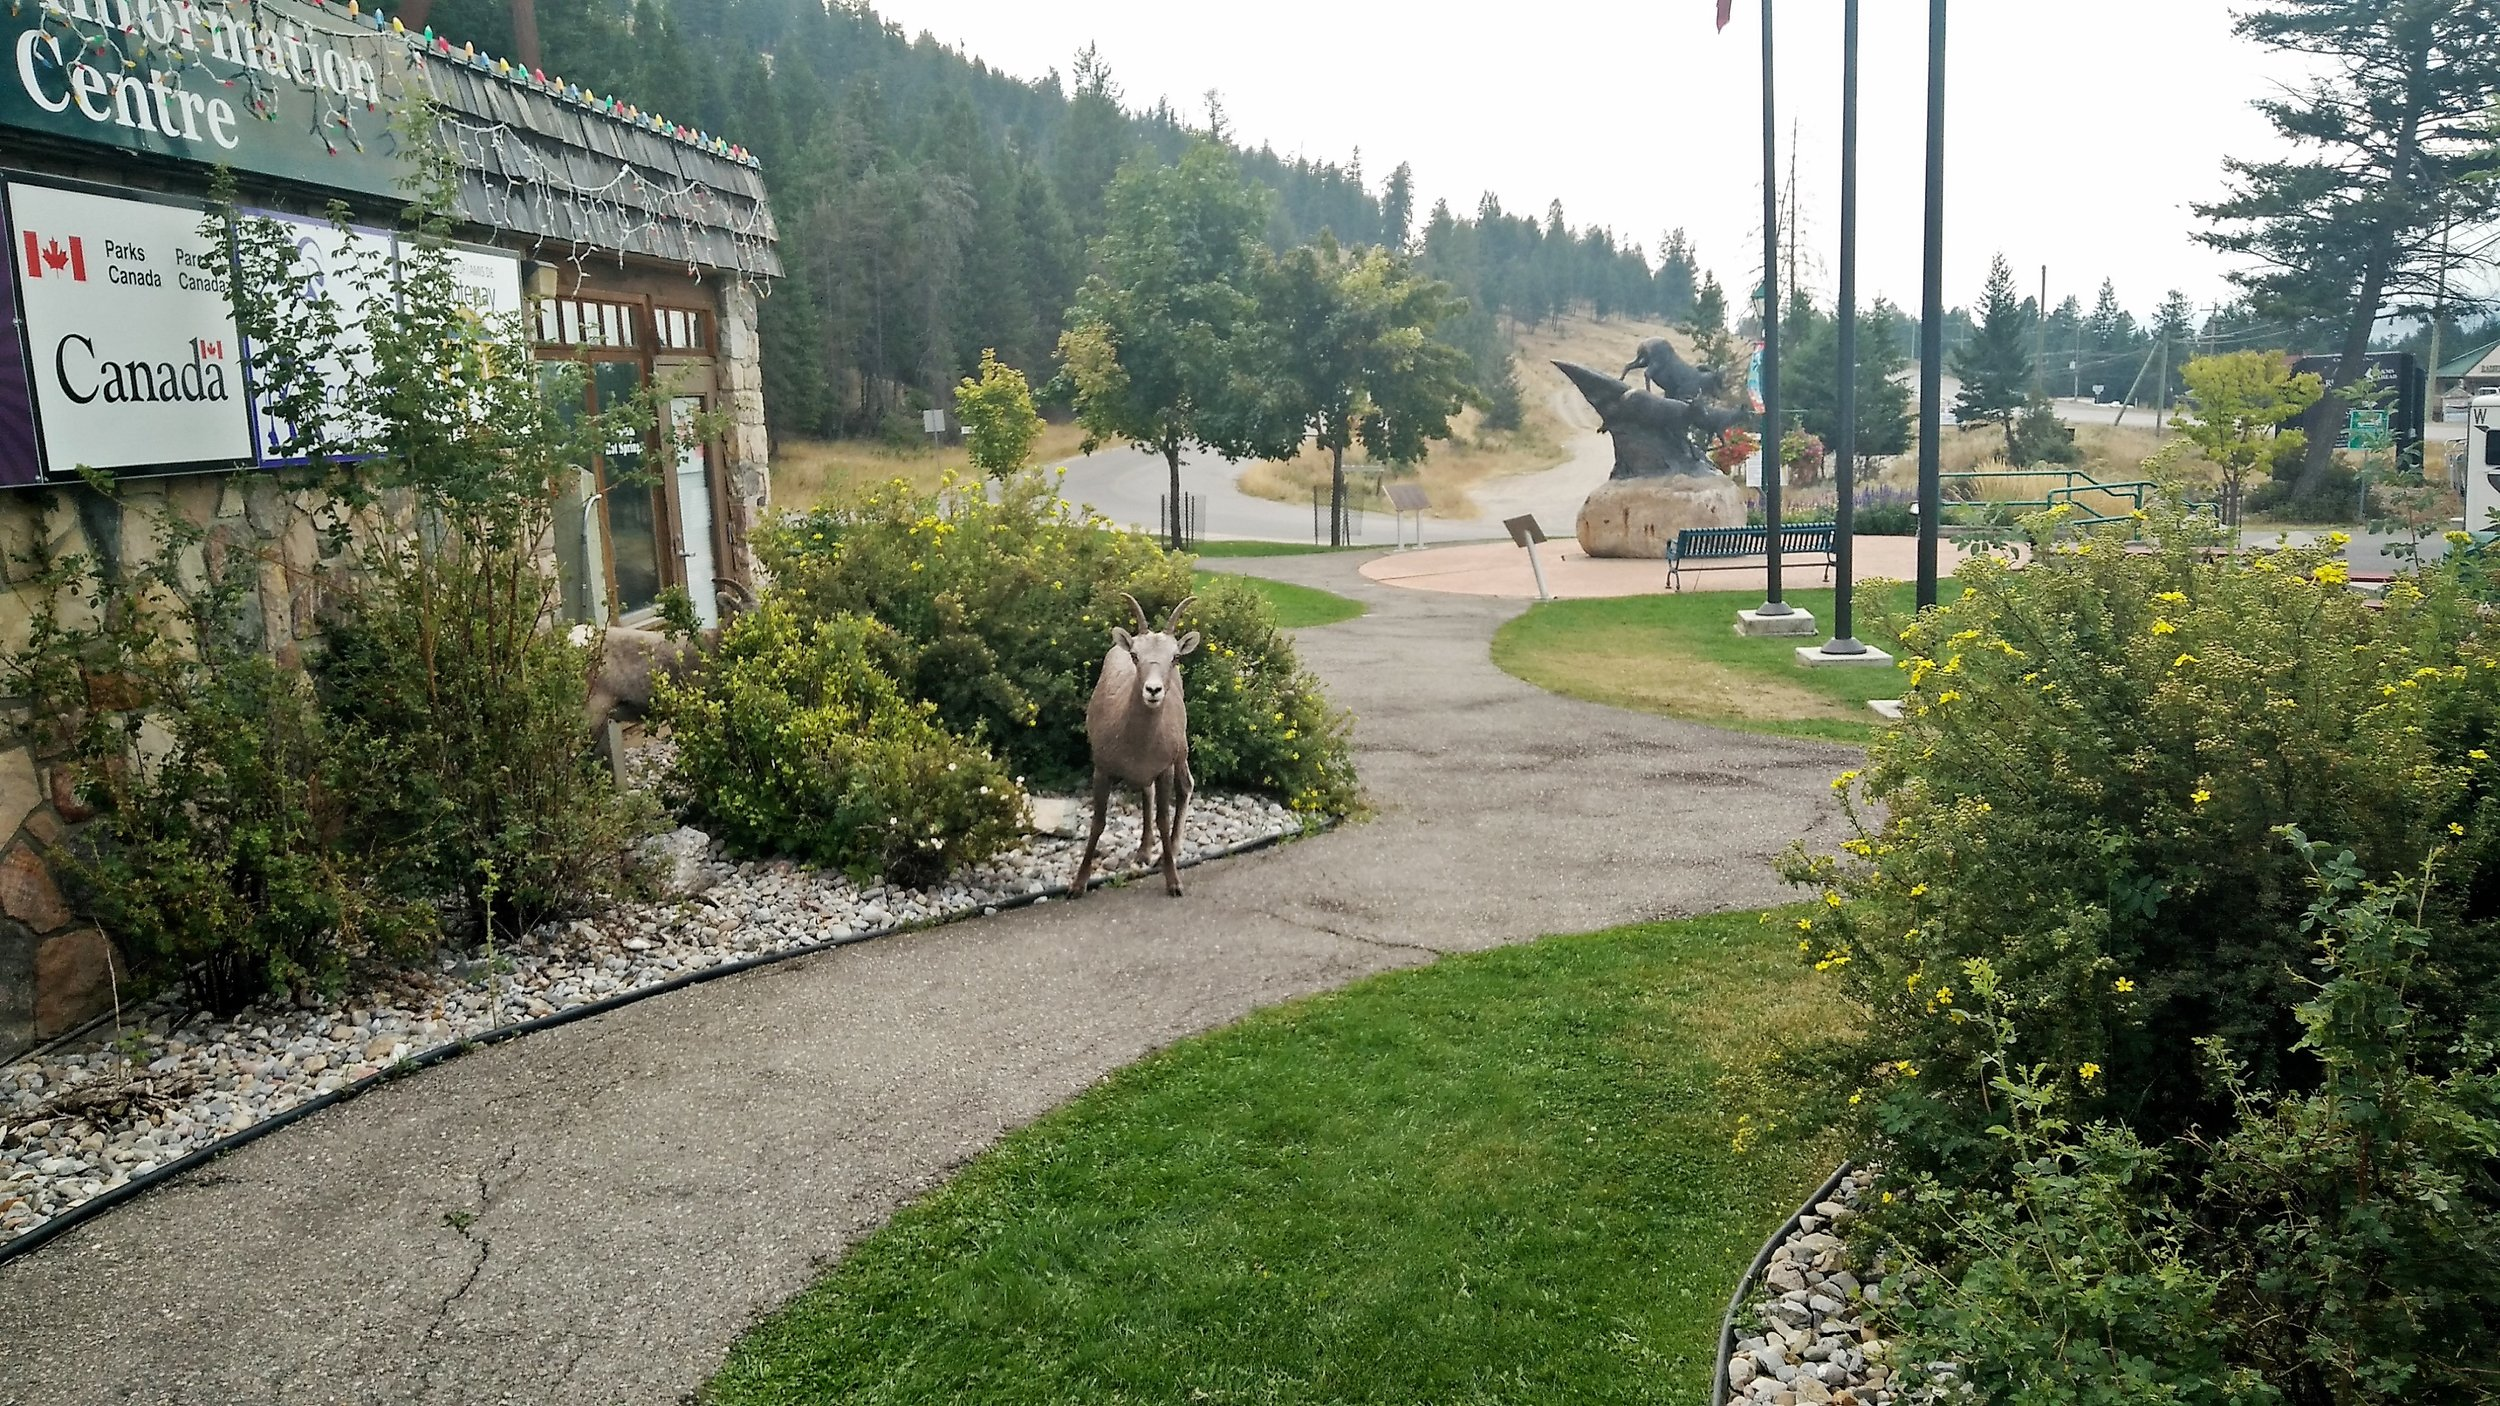 The natural wildlife we found in the town of Radium, where mountain goats wander the streets just like the tourists.